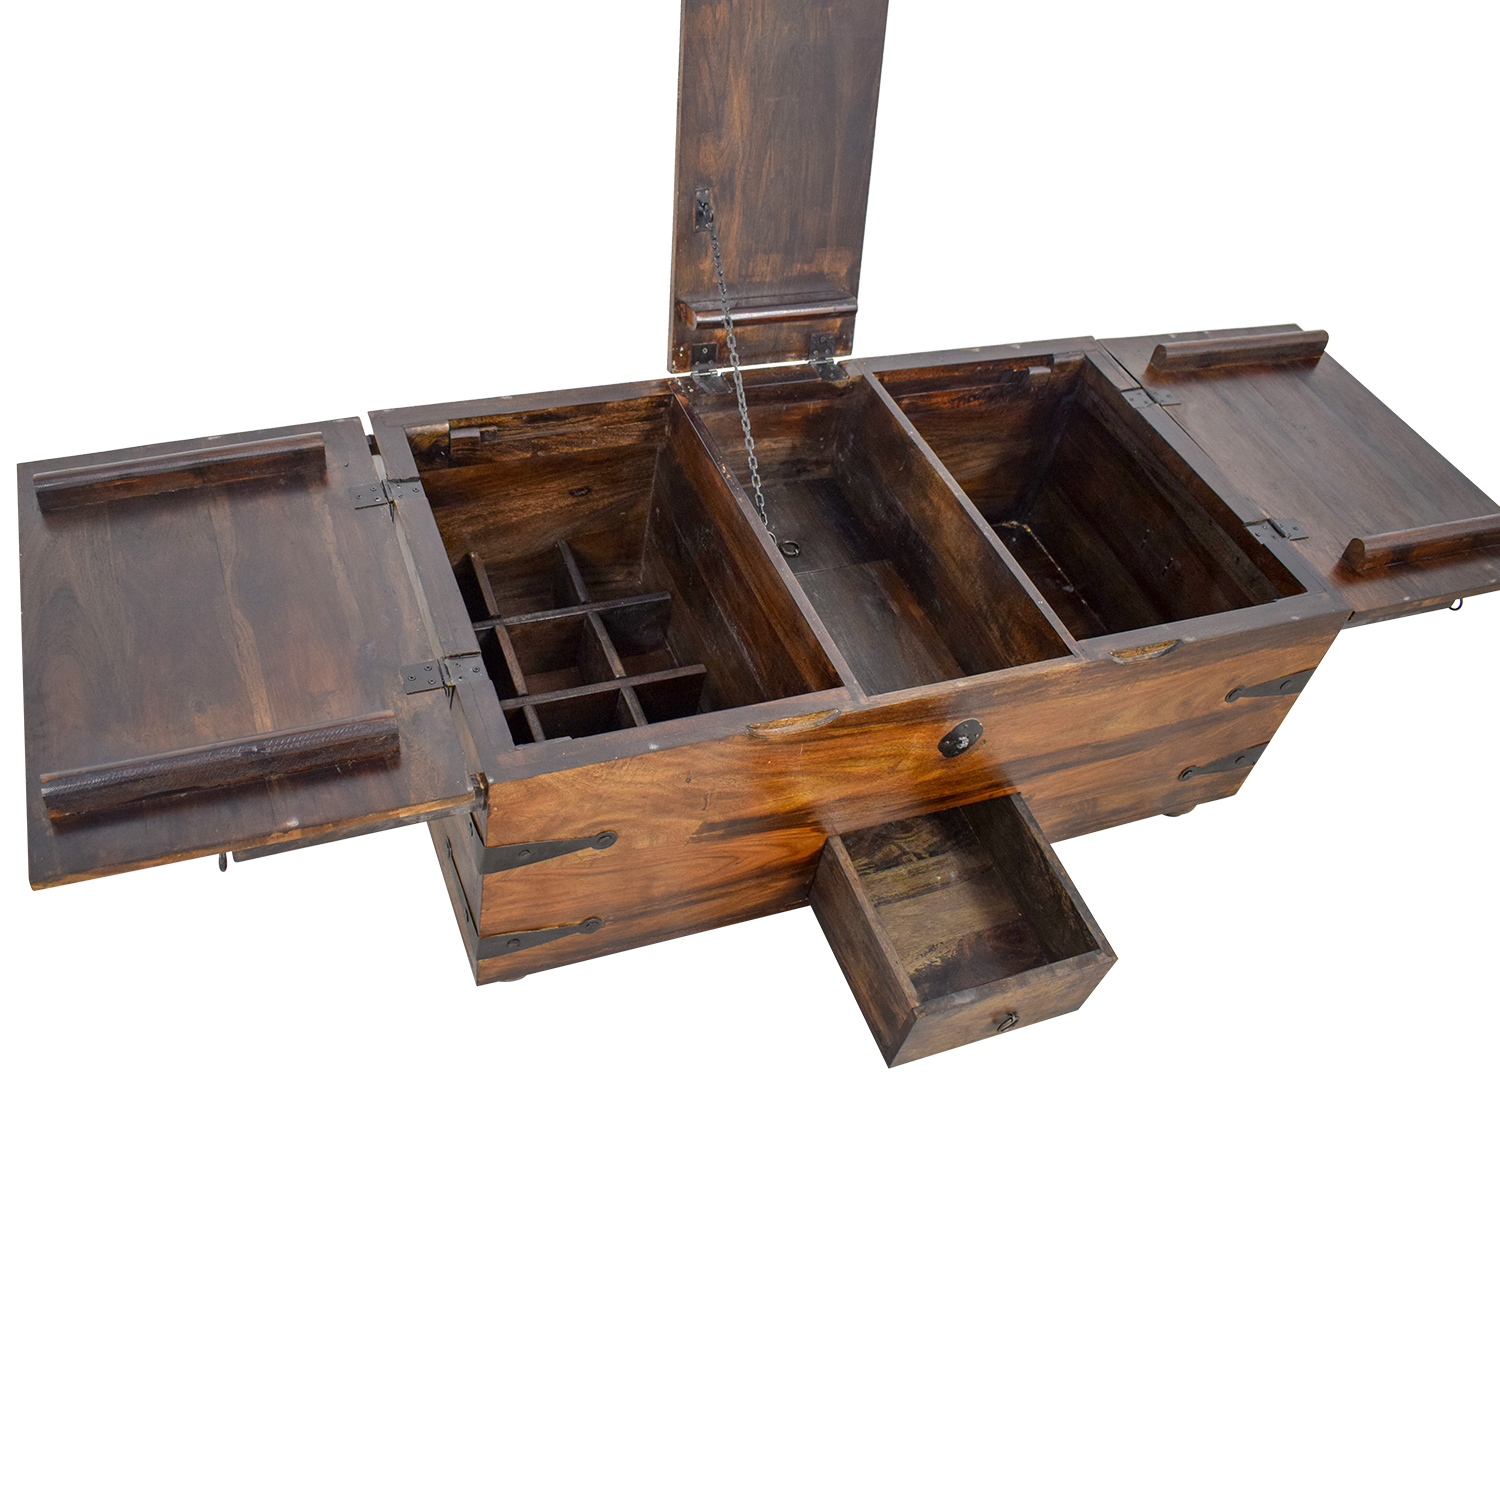 Crate Barrel Table: Crate And Barrel Crate & Barrel Chest Coffee